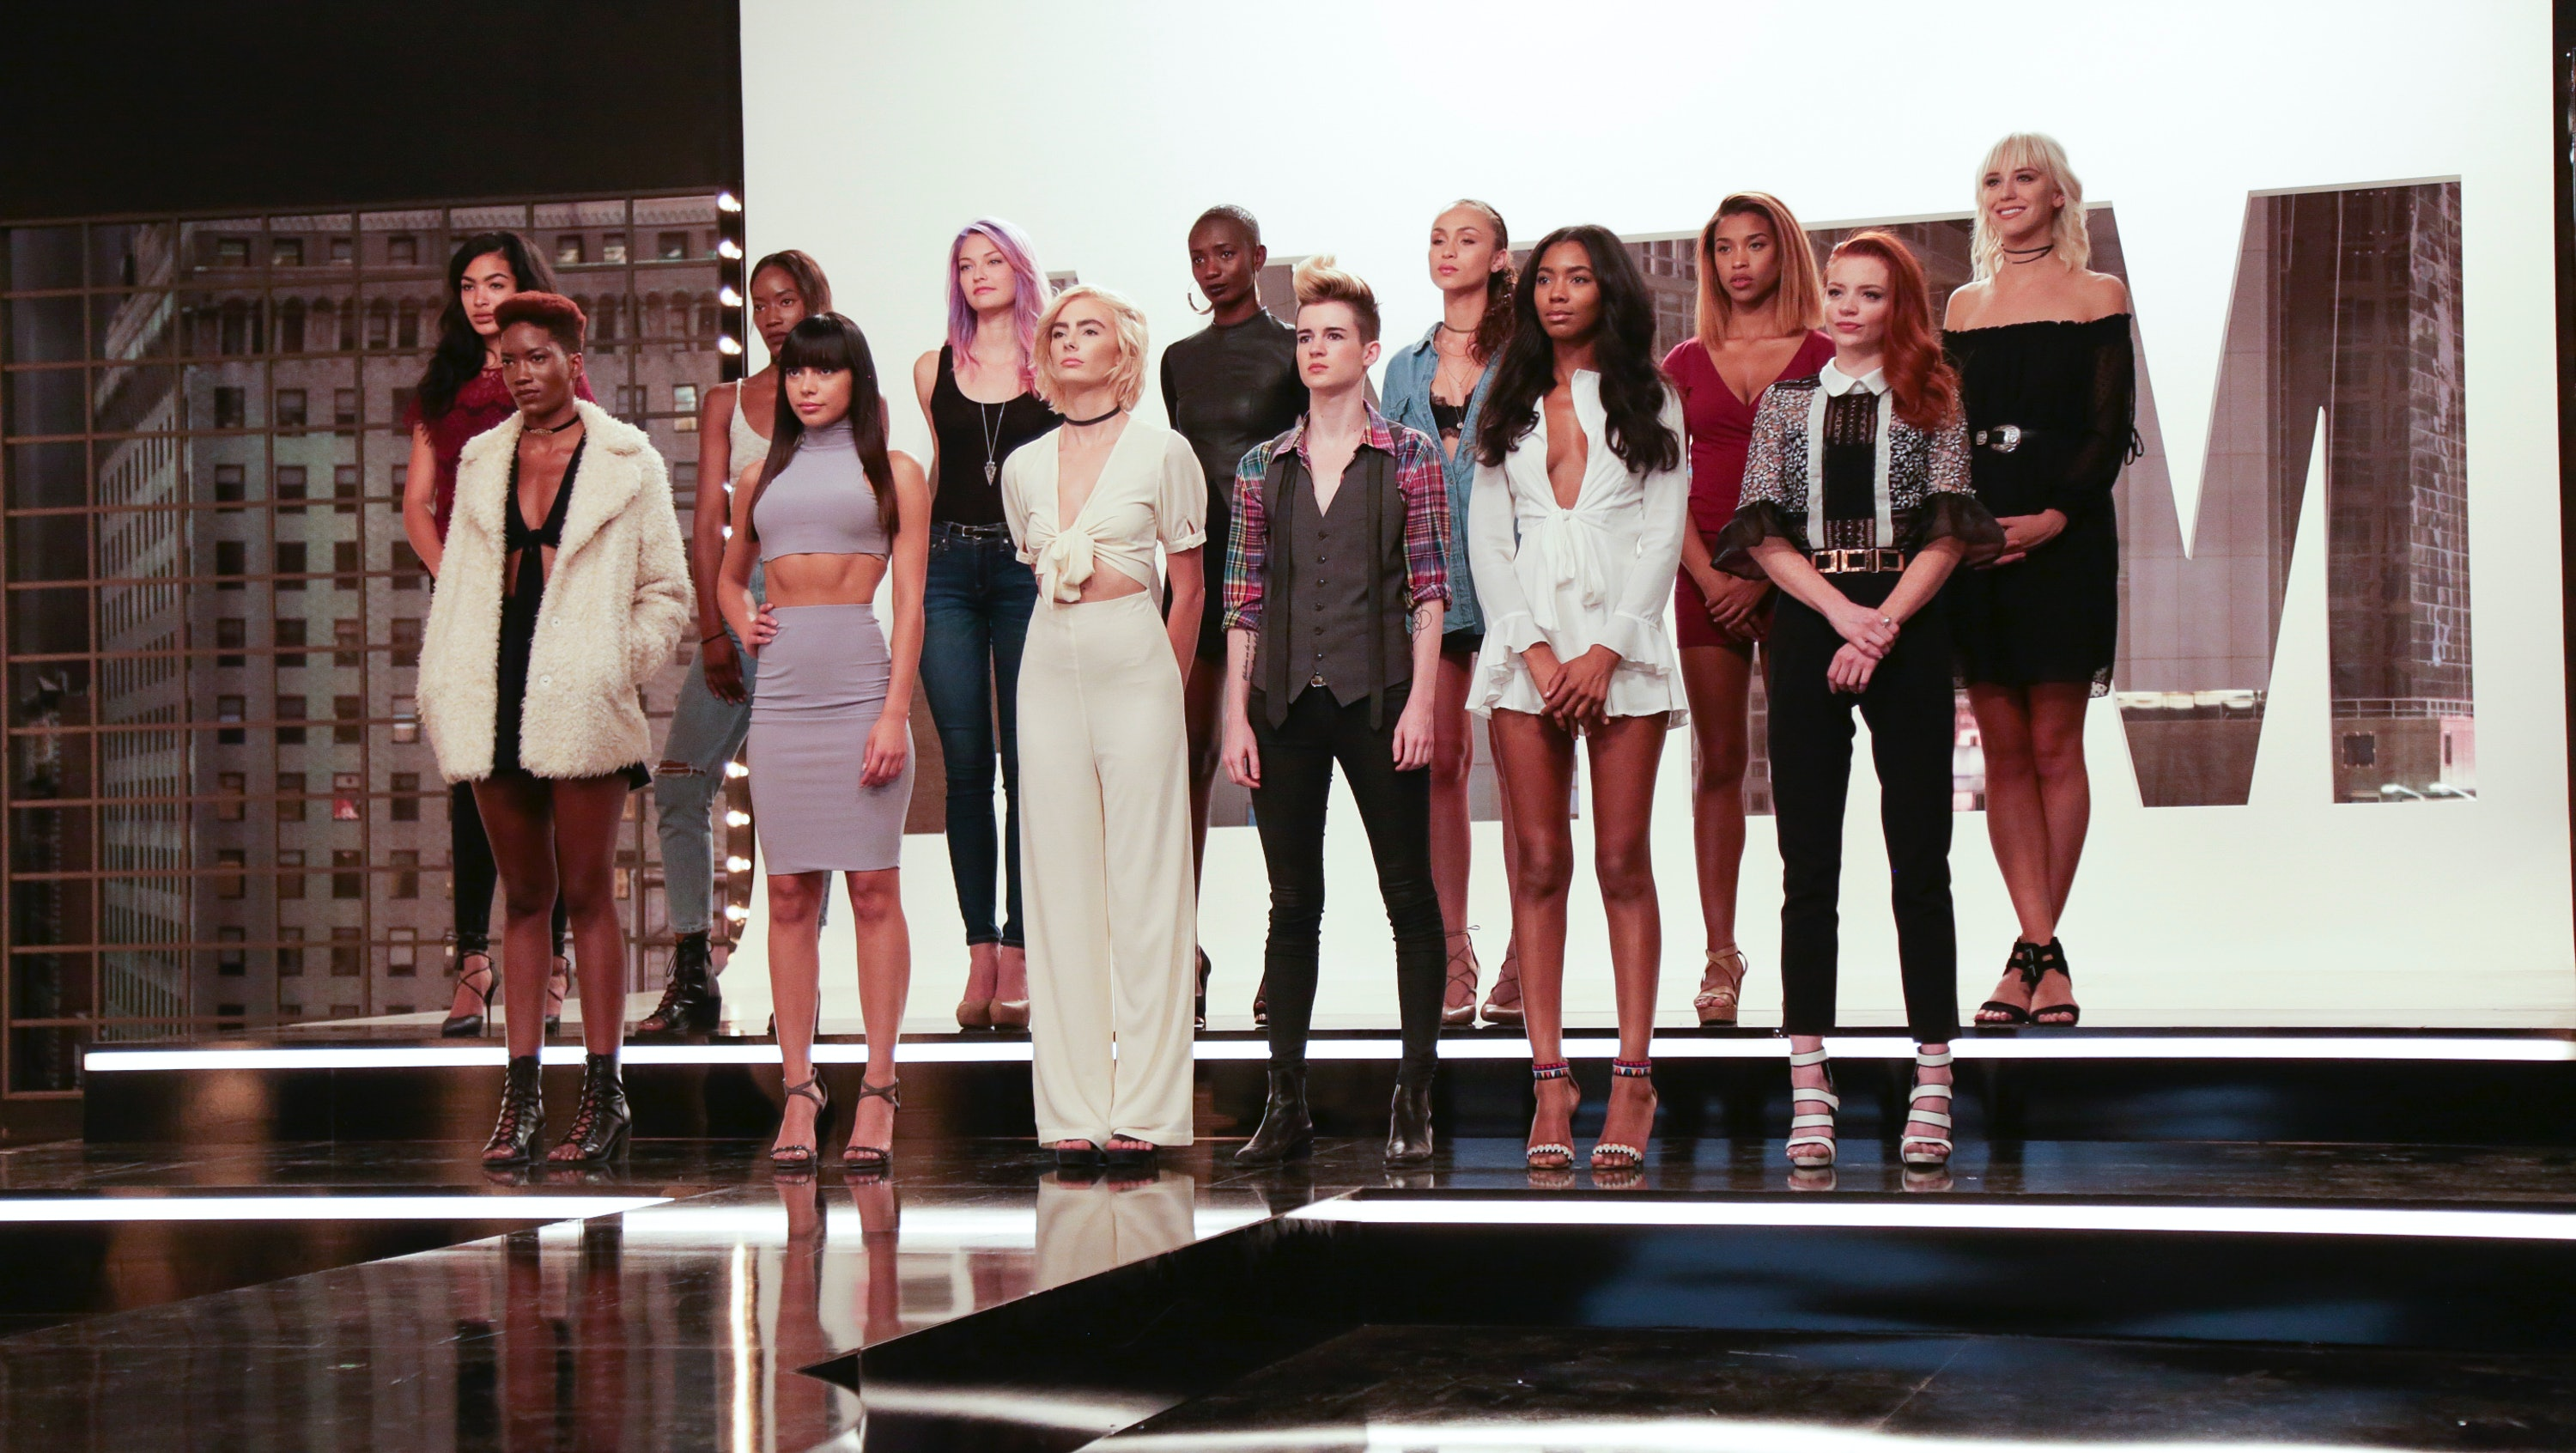 If 'America's Next Top Model' Returns For Cycle 24, The Show